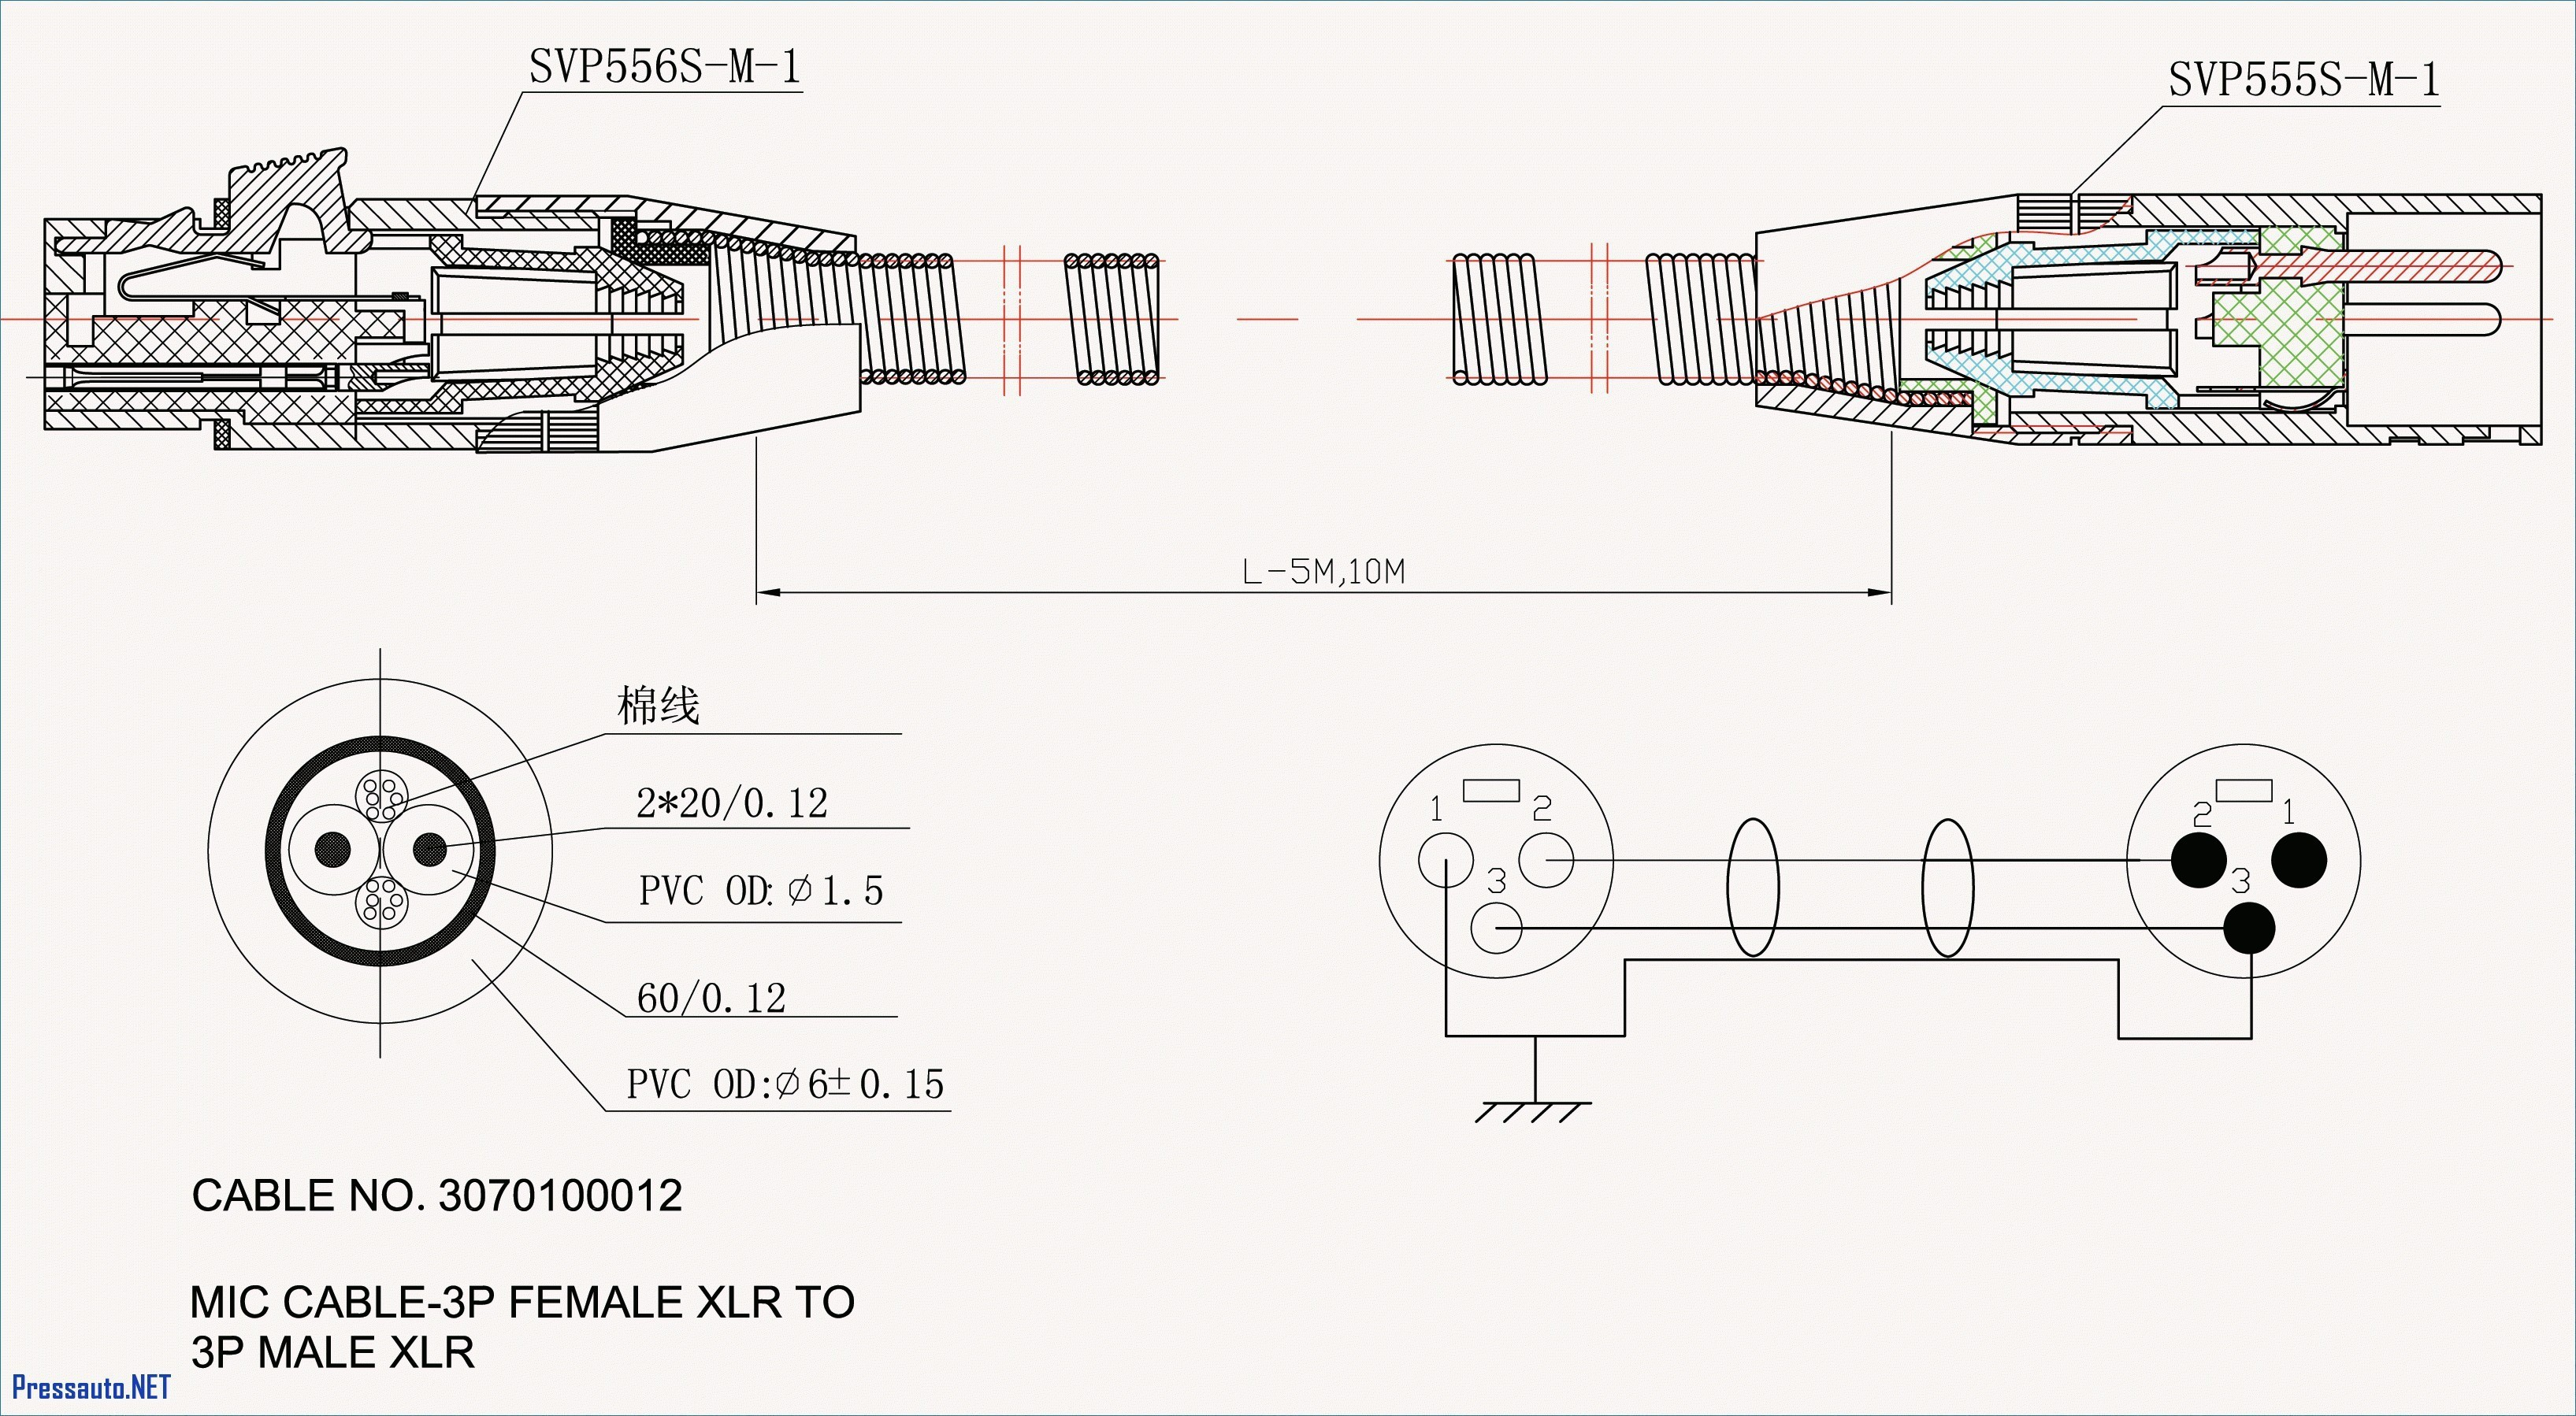 Echlin Voltage Regulator Wiring Diagram Free For You 6v Circuit Library Rh 10 Evitta De 4 Wire Schematic With Generator